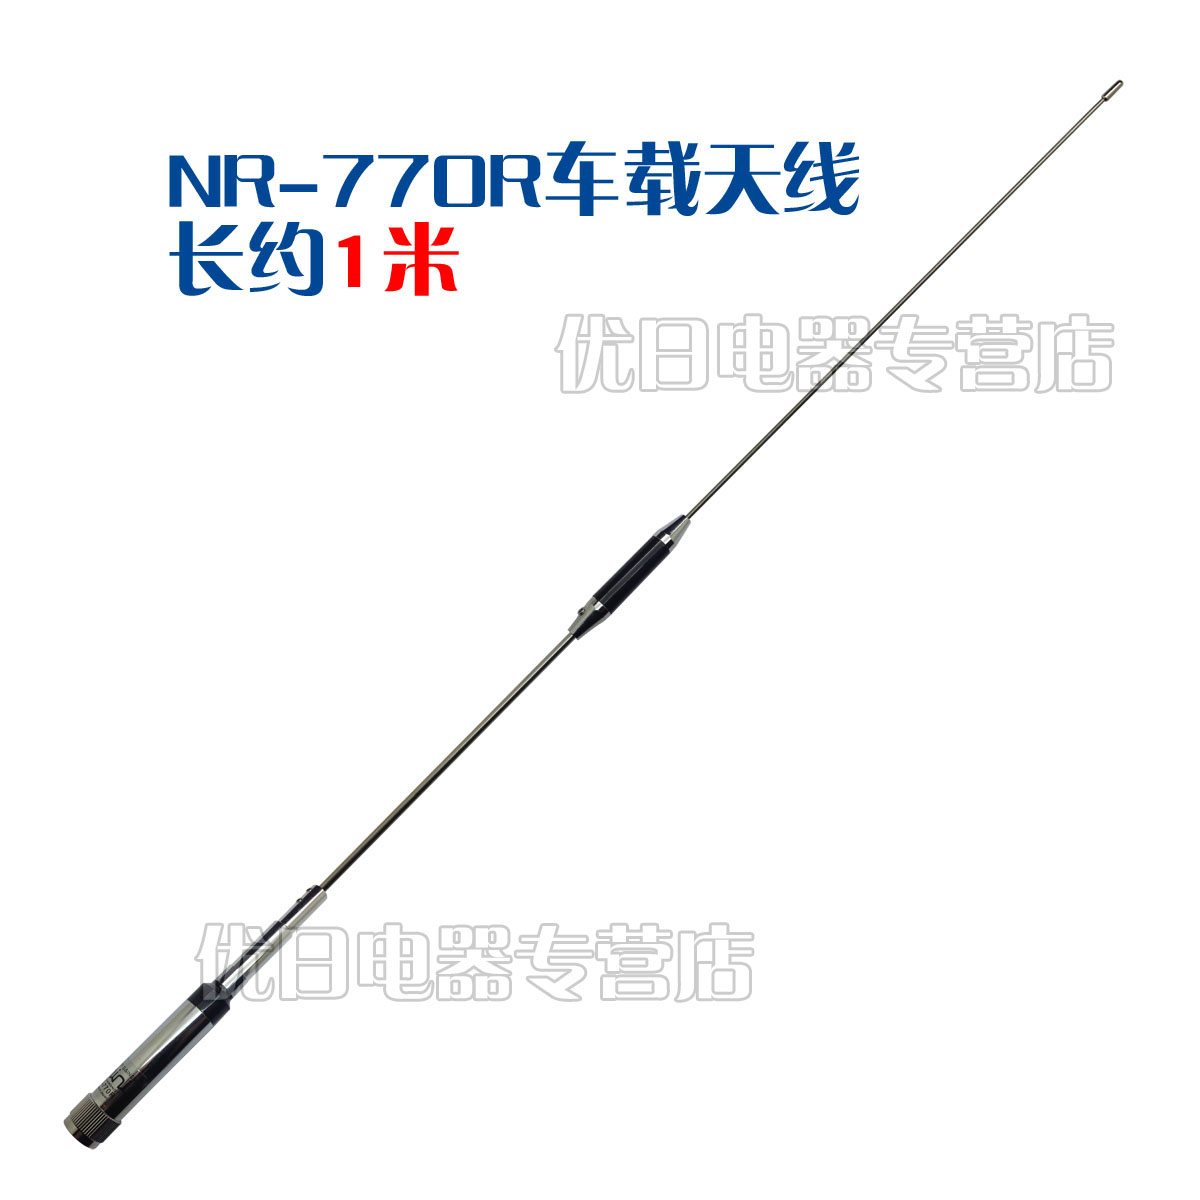 Excellent day â â car antenna car antenna nr-770r car seedling â â â high gain dual segment car pole